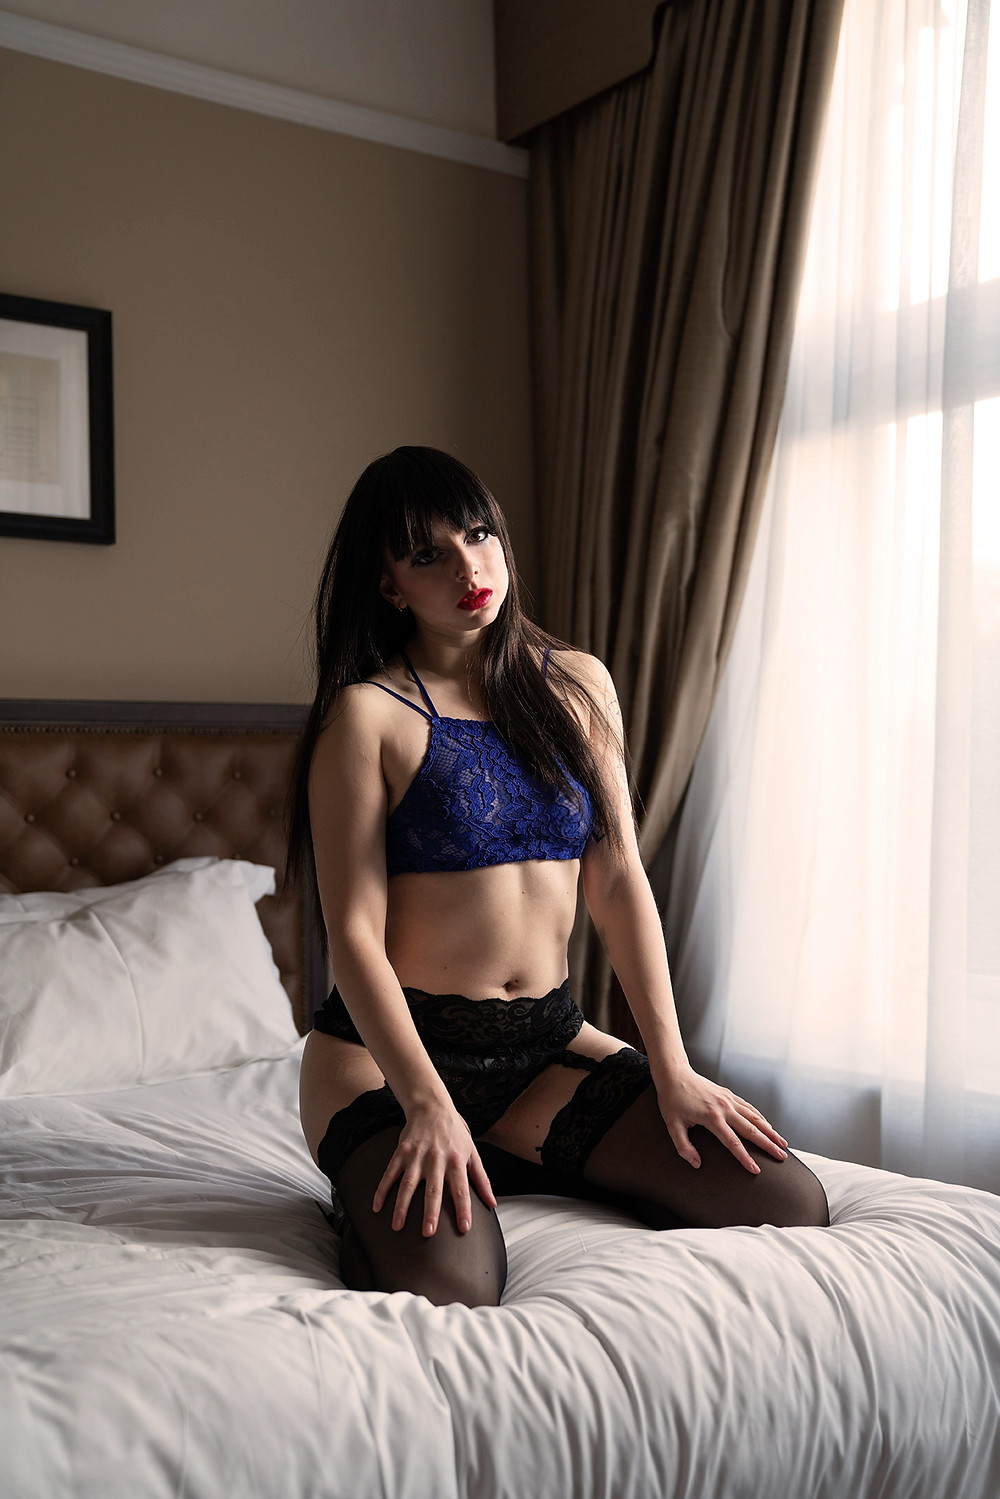 london-submissive-escort